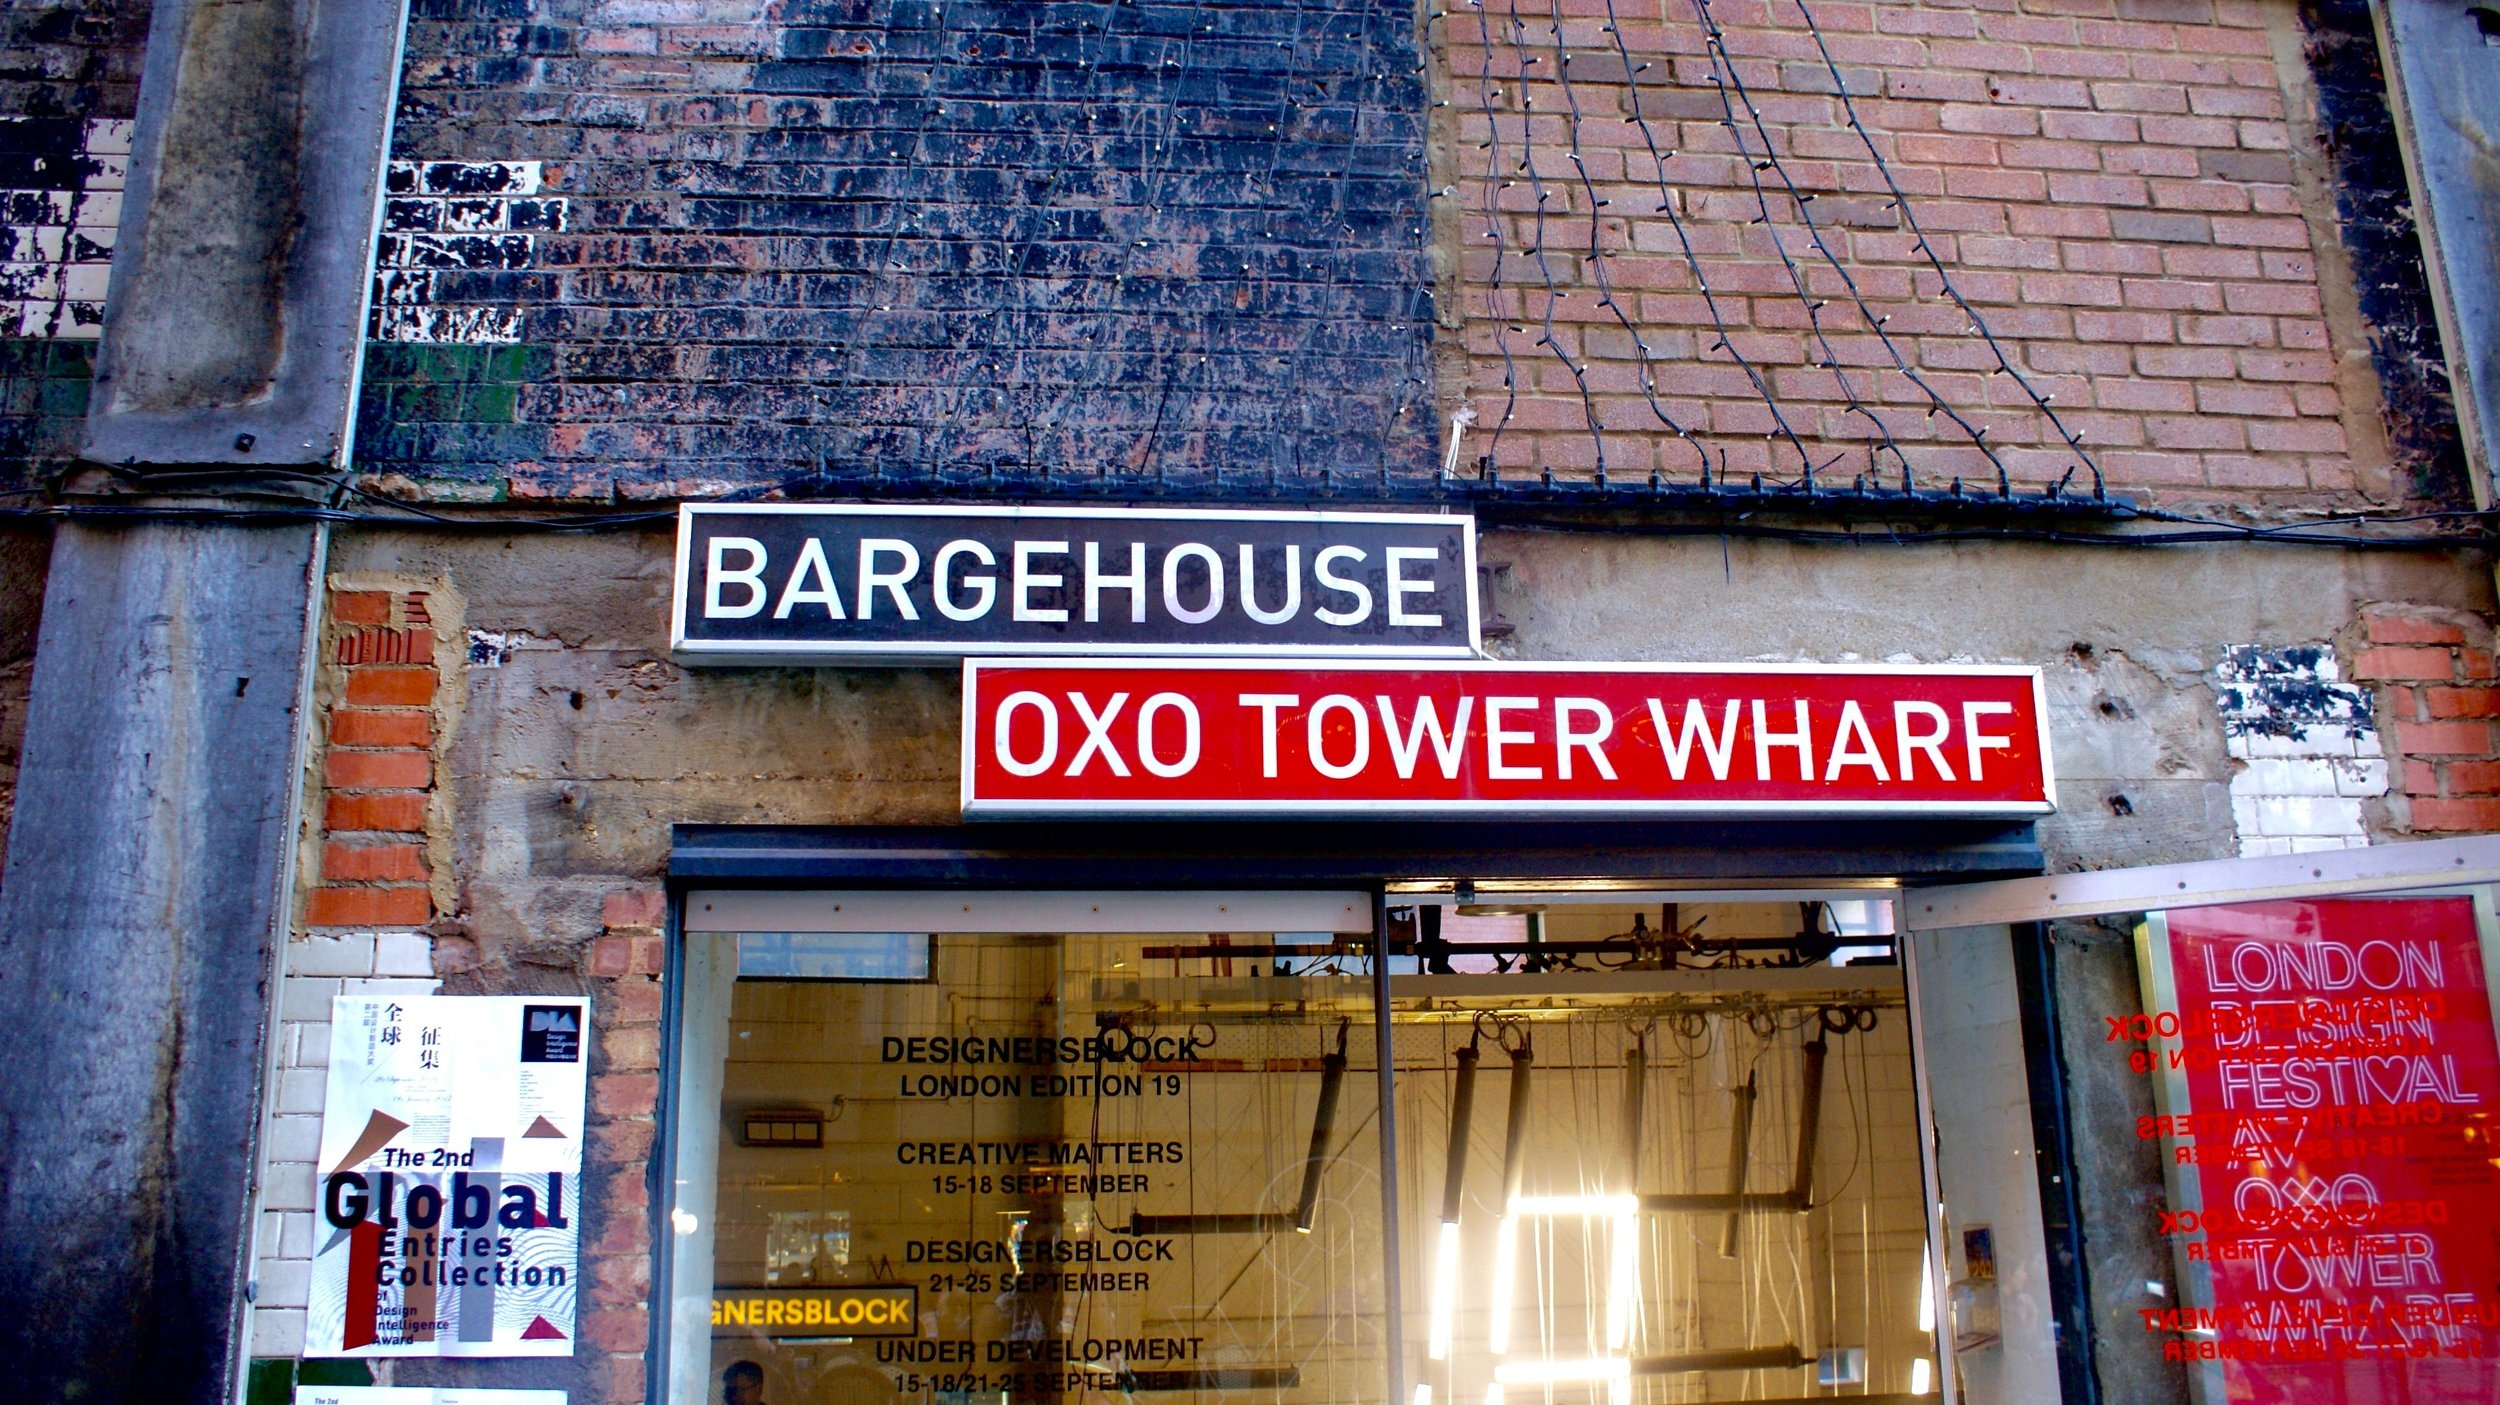 You should figure the atmosphere from the doorway alone. Welcome to the Bargehouse.